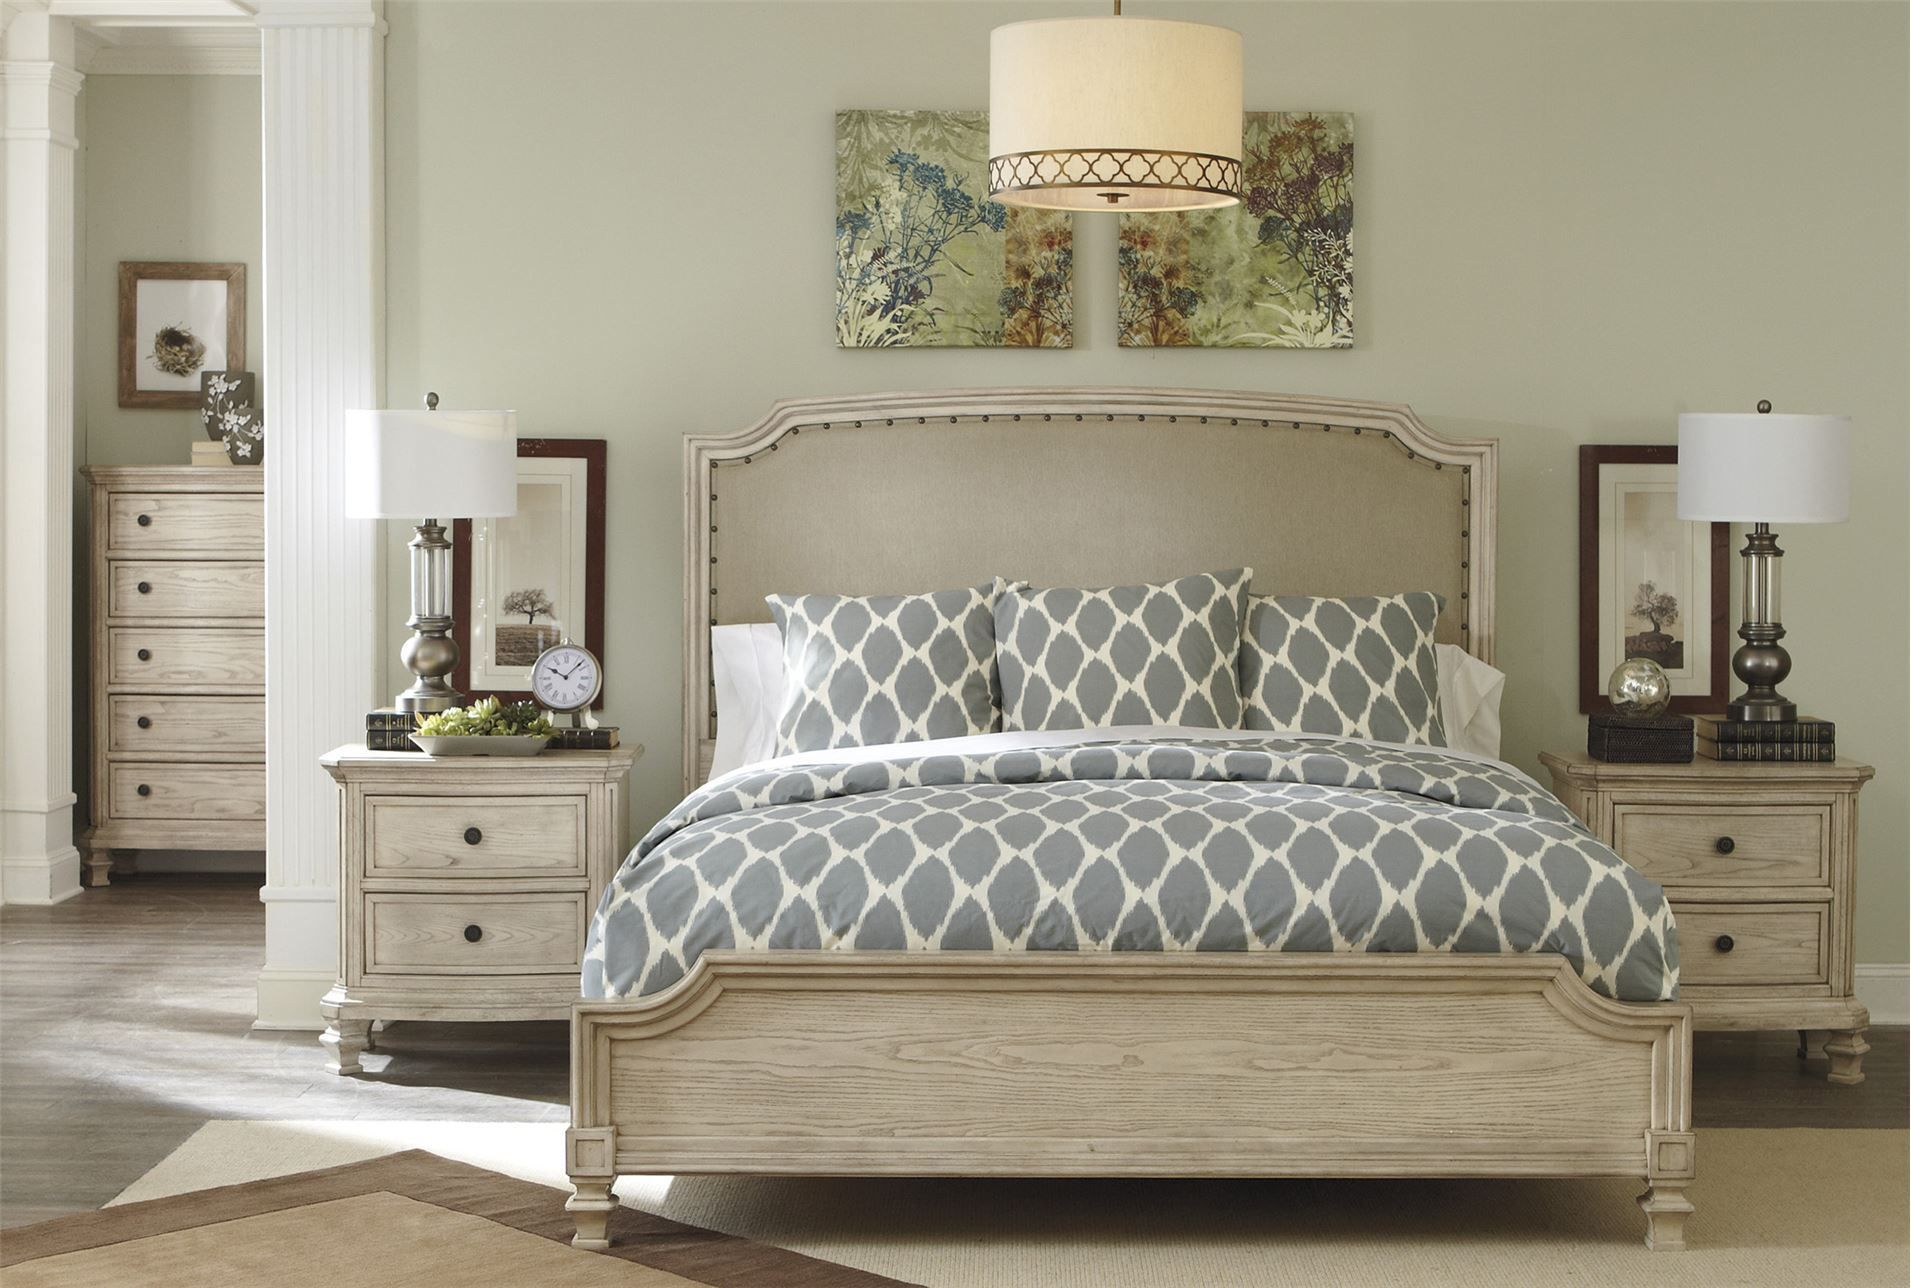 Demarlos Queen Panel Bed frame from Living Spaces. Like the details ...